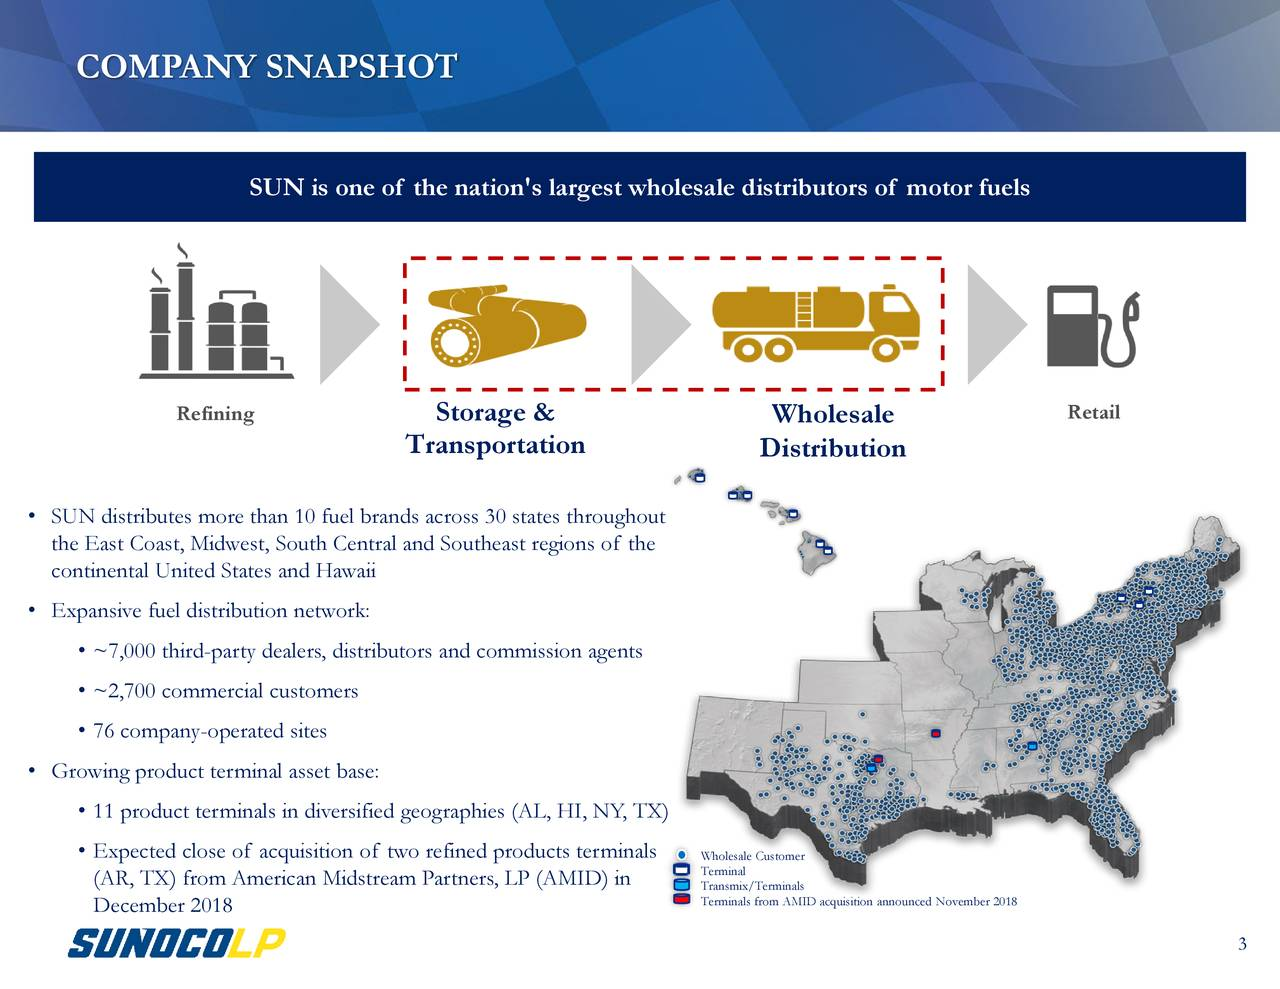 SUN is one of the nation's largest wholesale distributors of motor fuels Retail Refining Storage & Wholesale Transportation Distribution • SUN distributes more than 10 fuel brands across 30 states throughout the East Coast, Midwest, South Central and Southeast regions of the continental United States and Hawaii • Expansive fuel distribution network: • ~7,000 third-party dealers, distributors and commission agents • ~2,700 commercial customers • 76 company-operated sites • Growing product terminal asset base: • 11 product terminals in diversified geographies (AL, HI, NY, TX) • Expected close of acquisition of two refined products terminalsWholesale Customer (AR, TX) from American Midstream Partners, LP (AMID) in Transmix/Terminals December 2018 Terminals from AMID acquisition announced November 2018 3